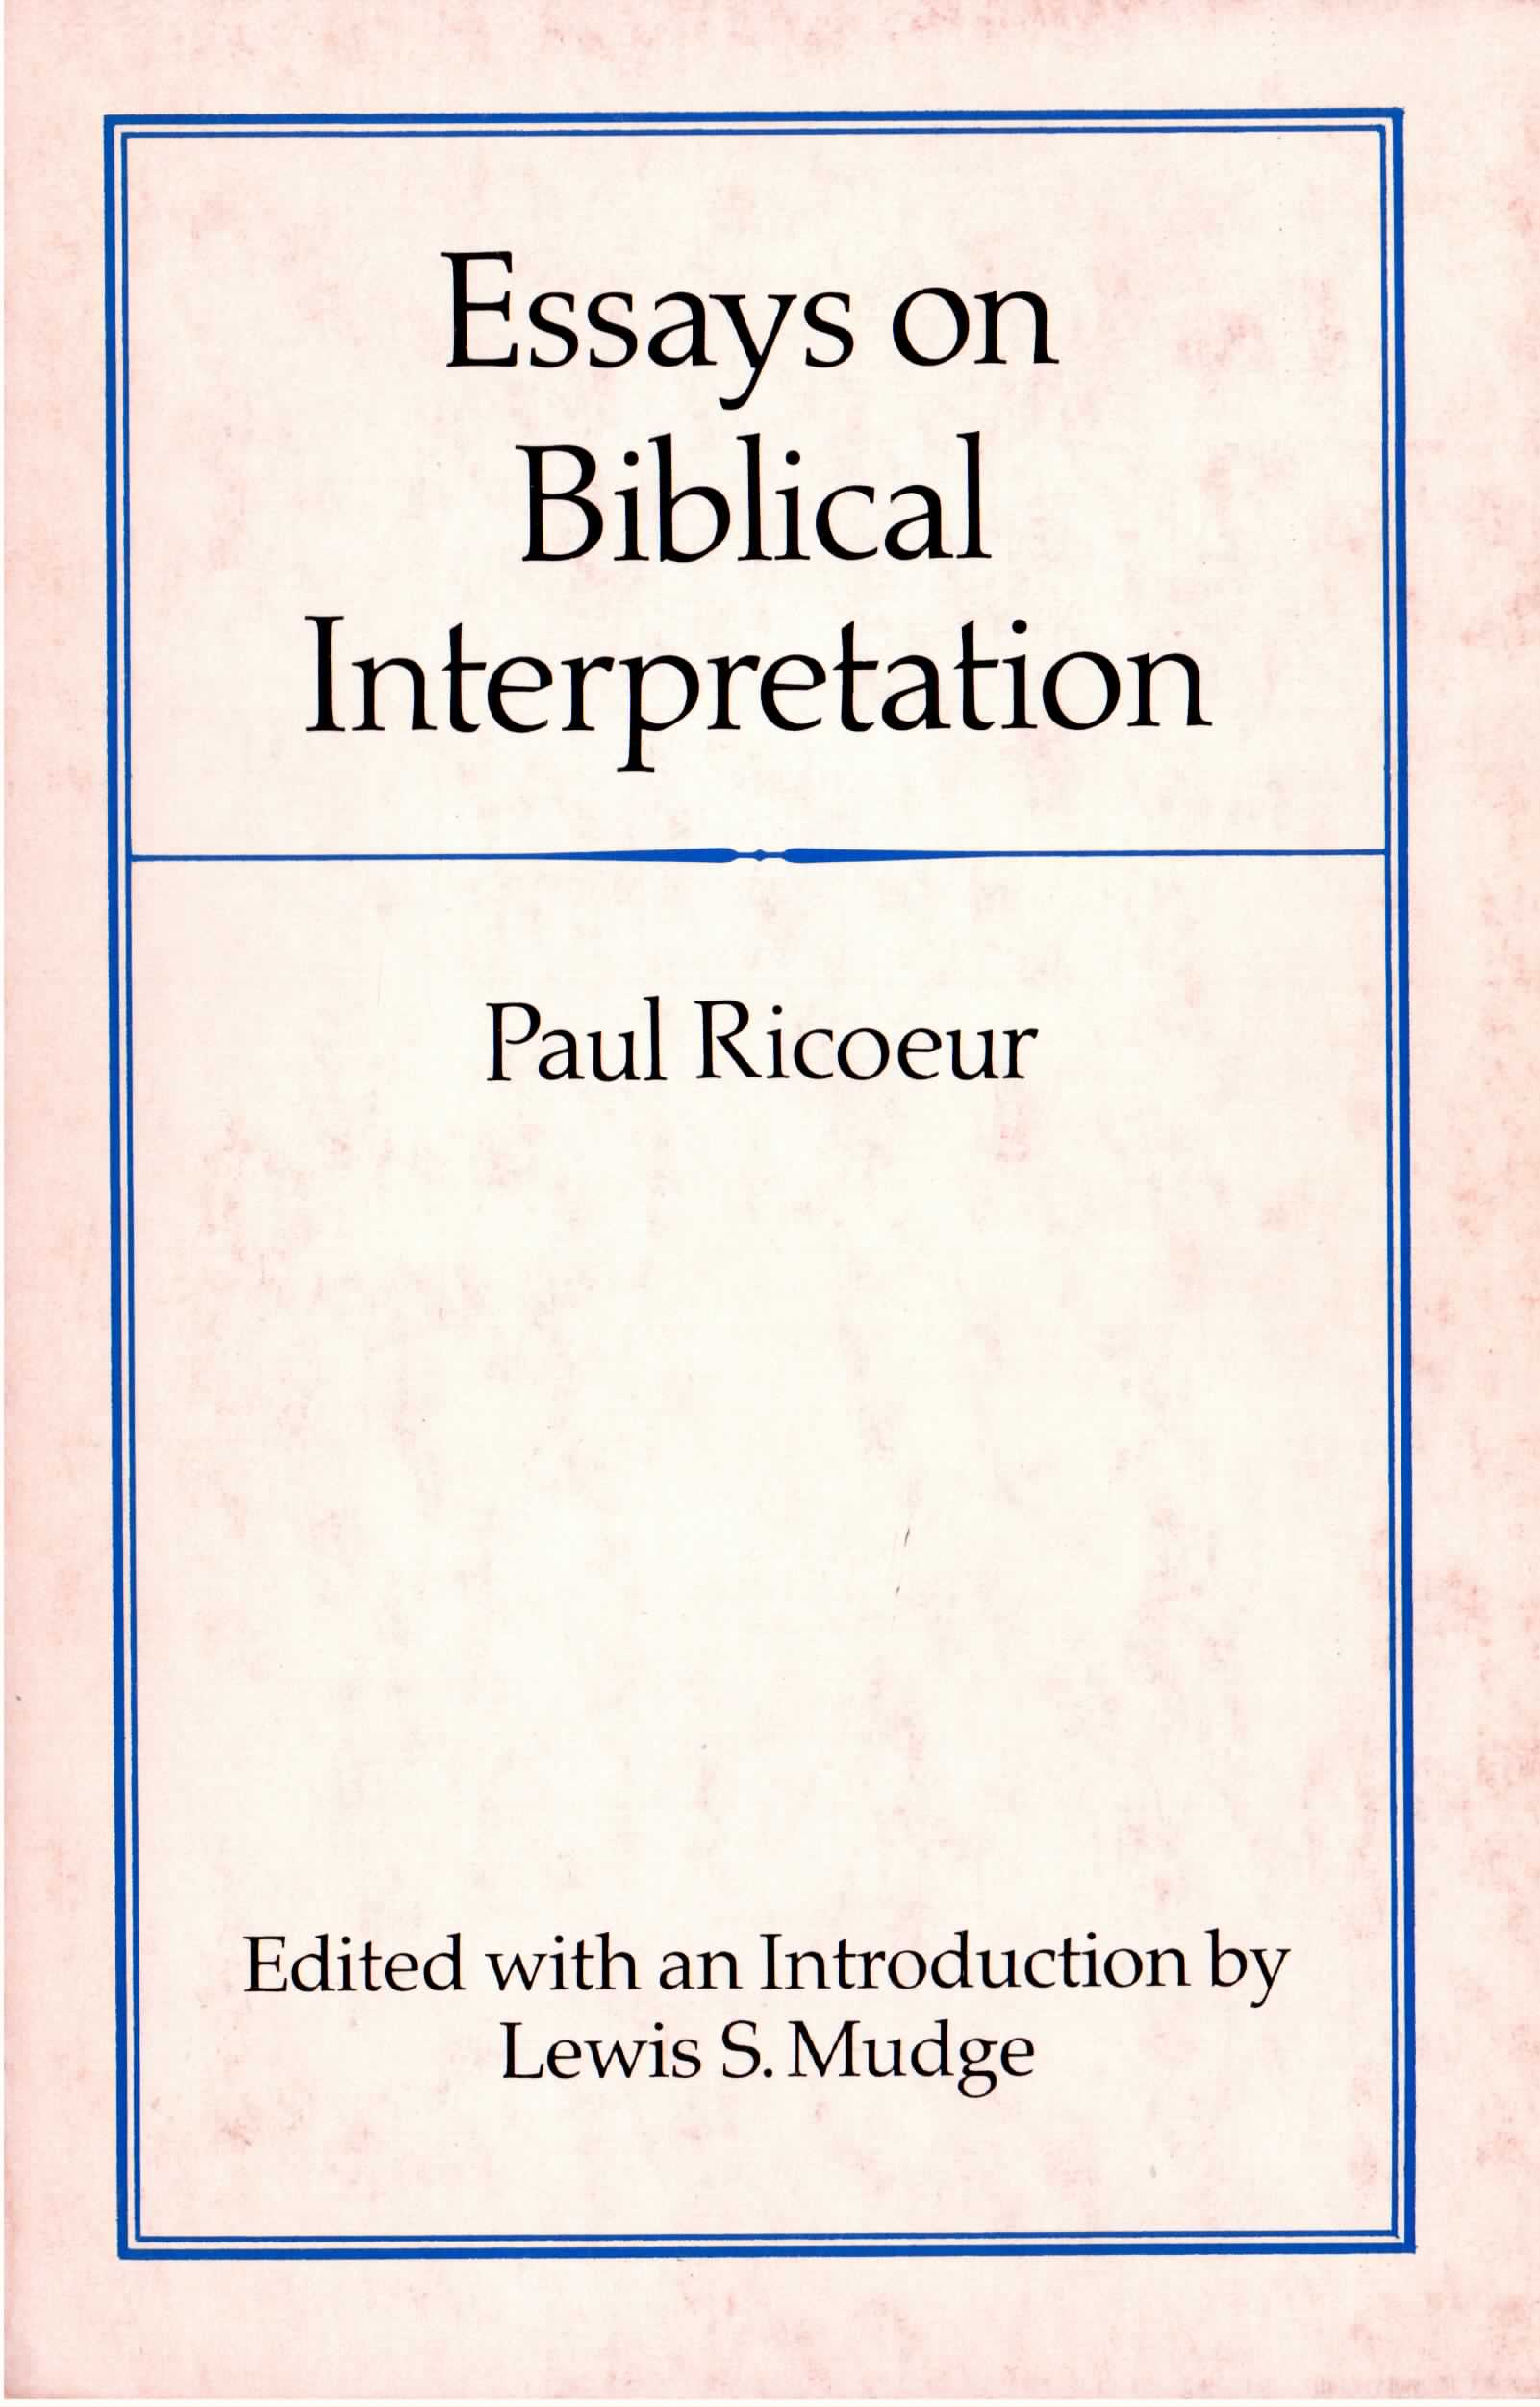 On Biblical Interpretation